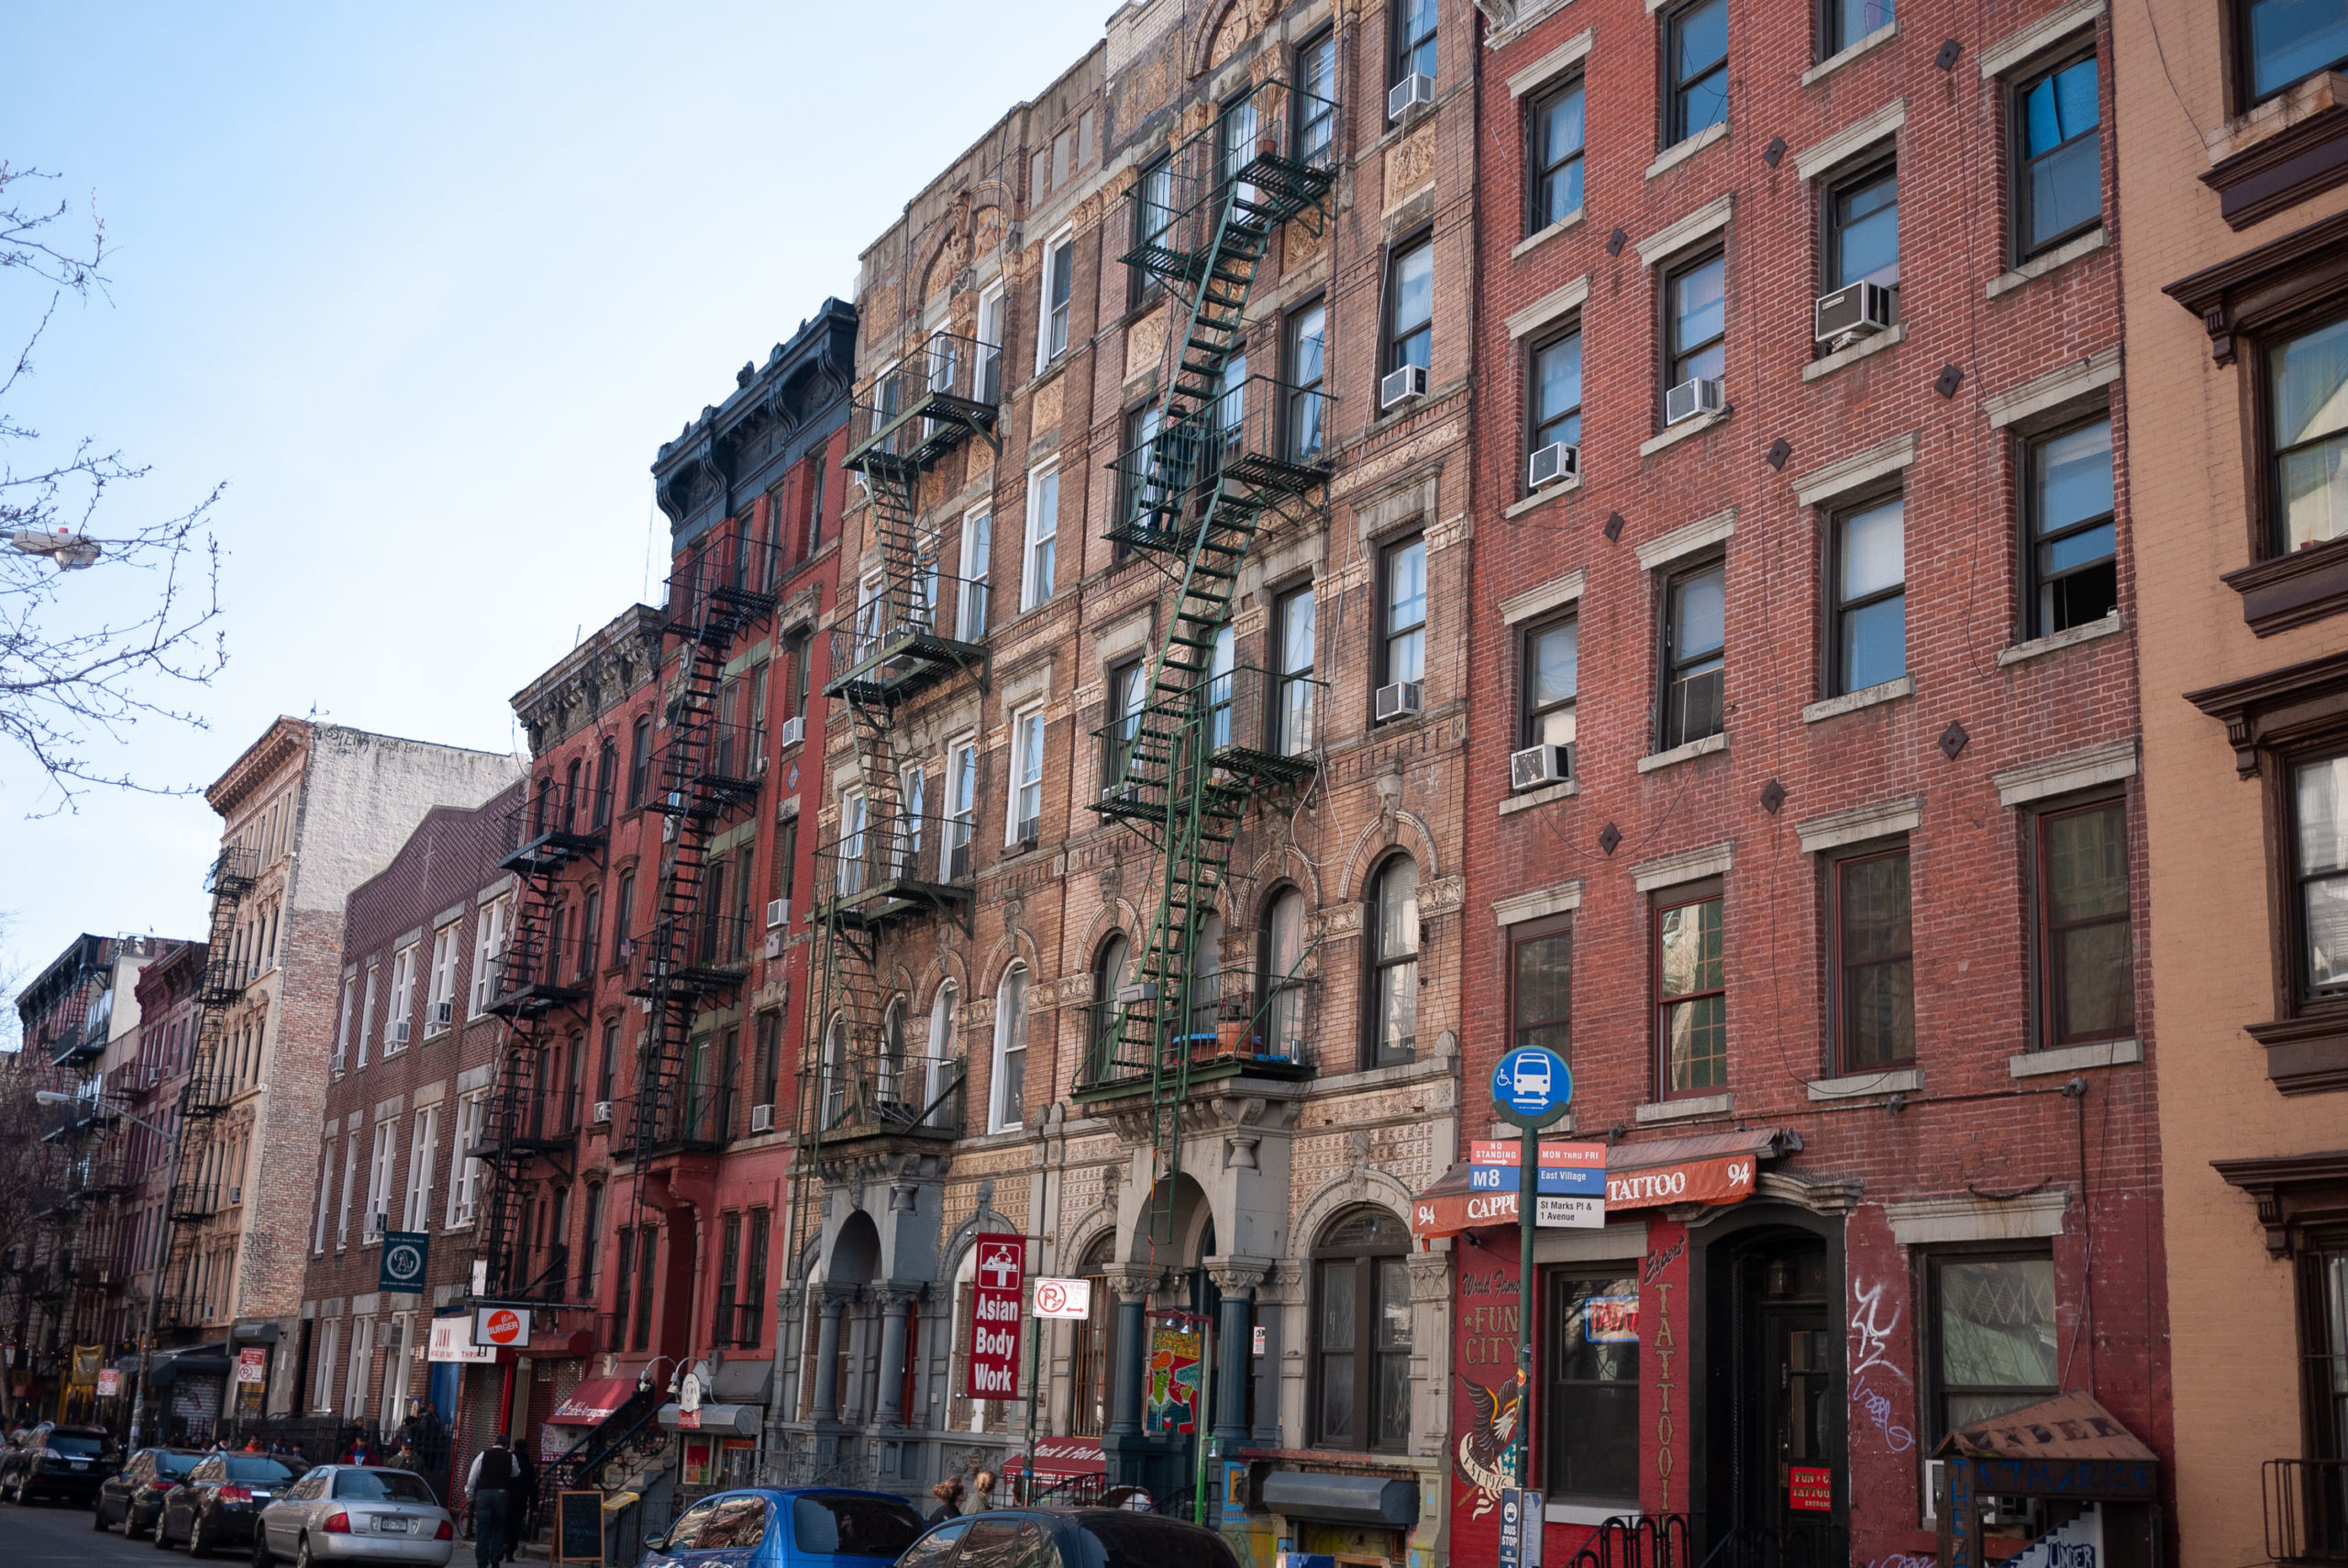 St. Marks Place from an angle